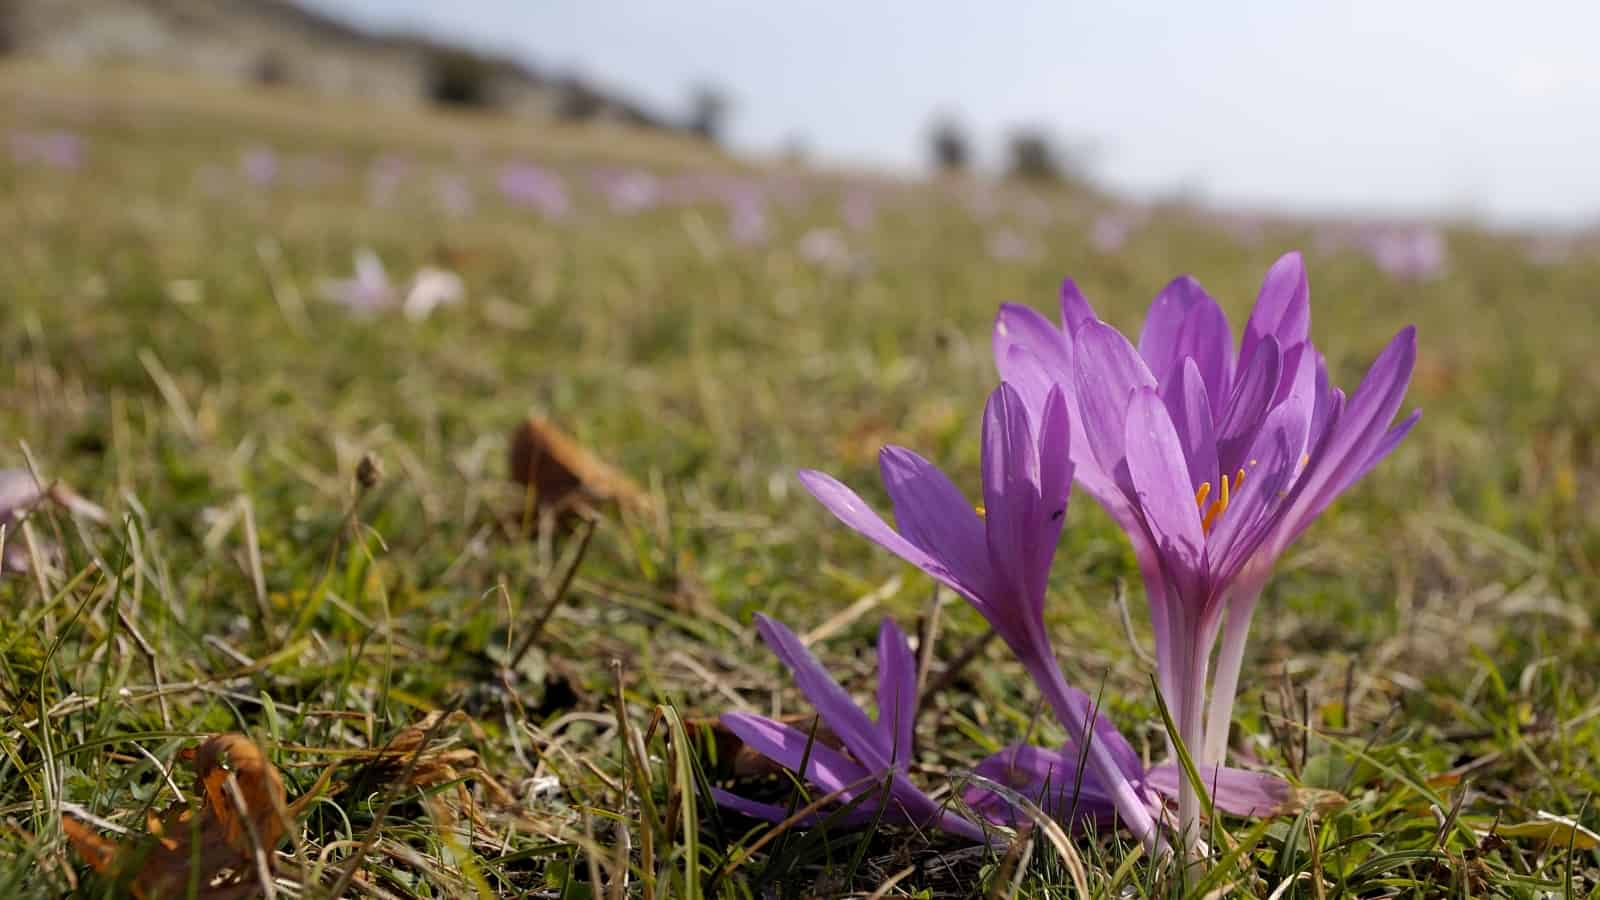 Autumn crocus/Meadow saffron (Colchicum autumnale) - photo: Vrachanski Balkan Nature Park